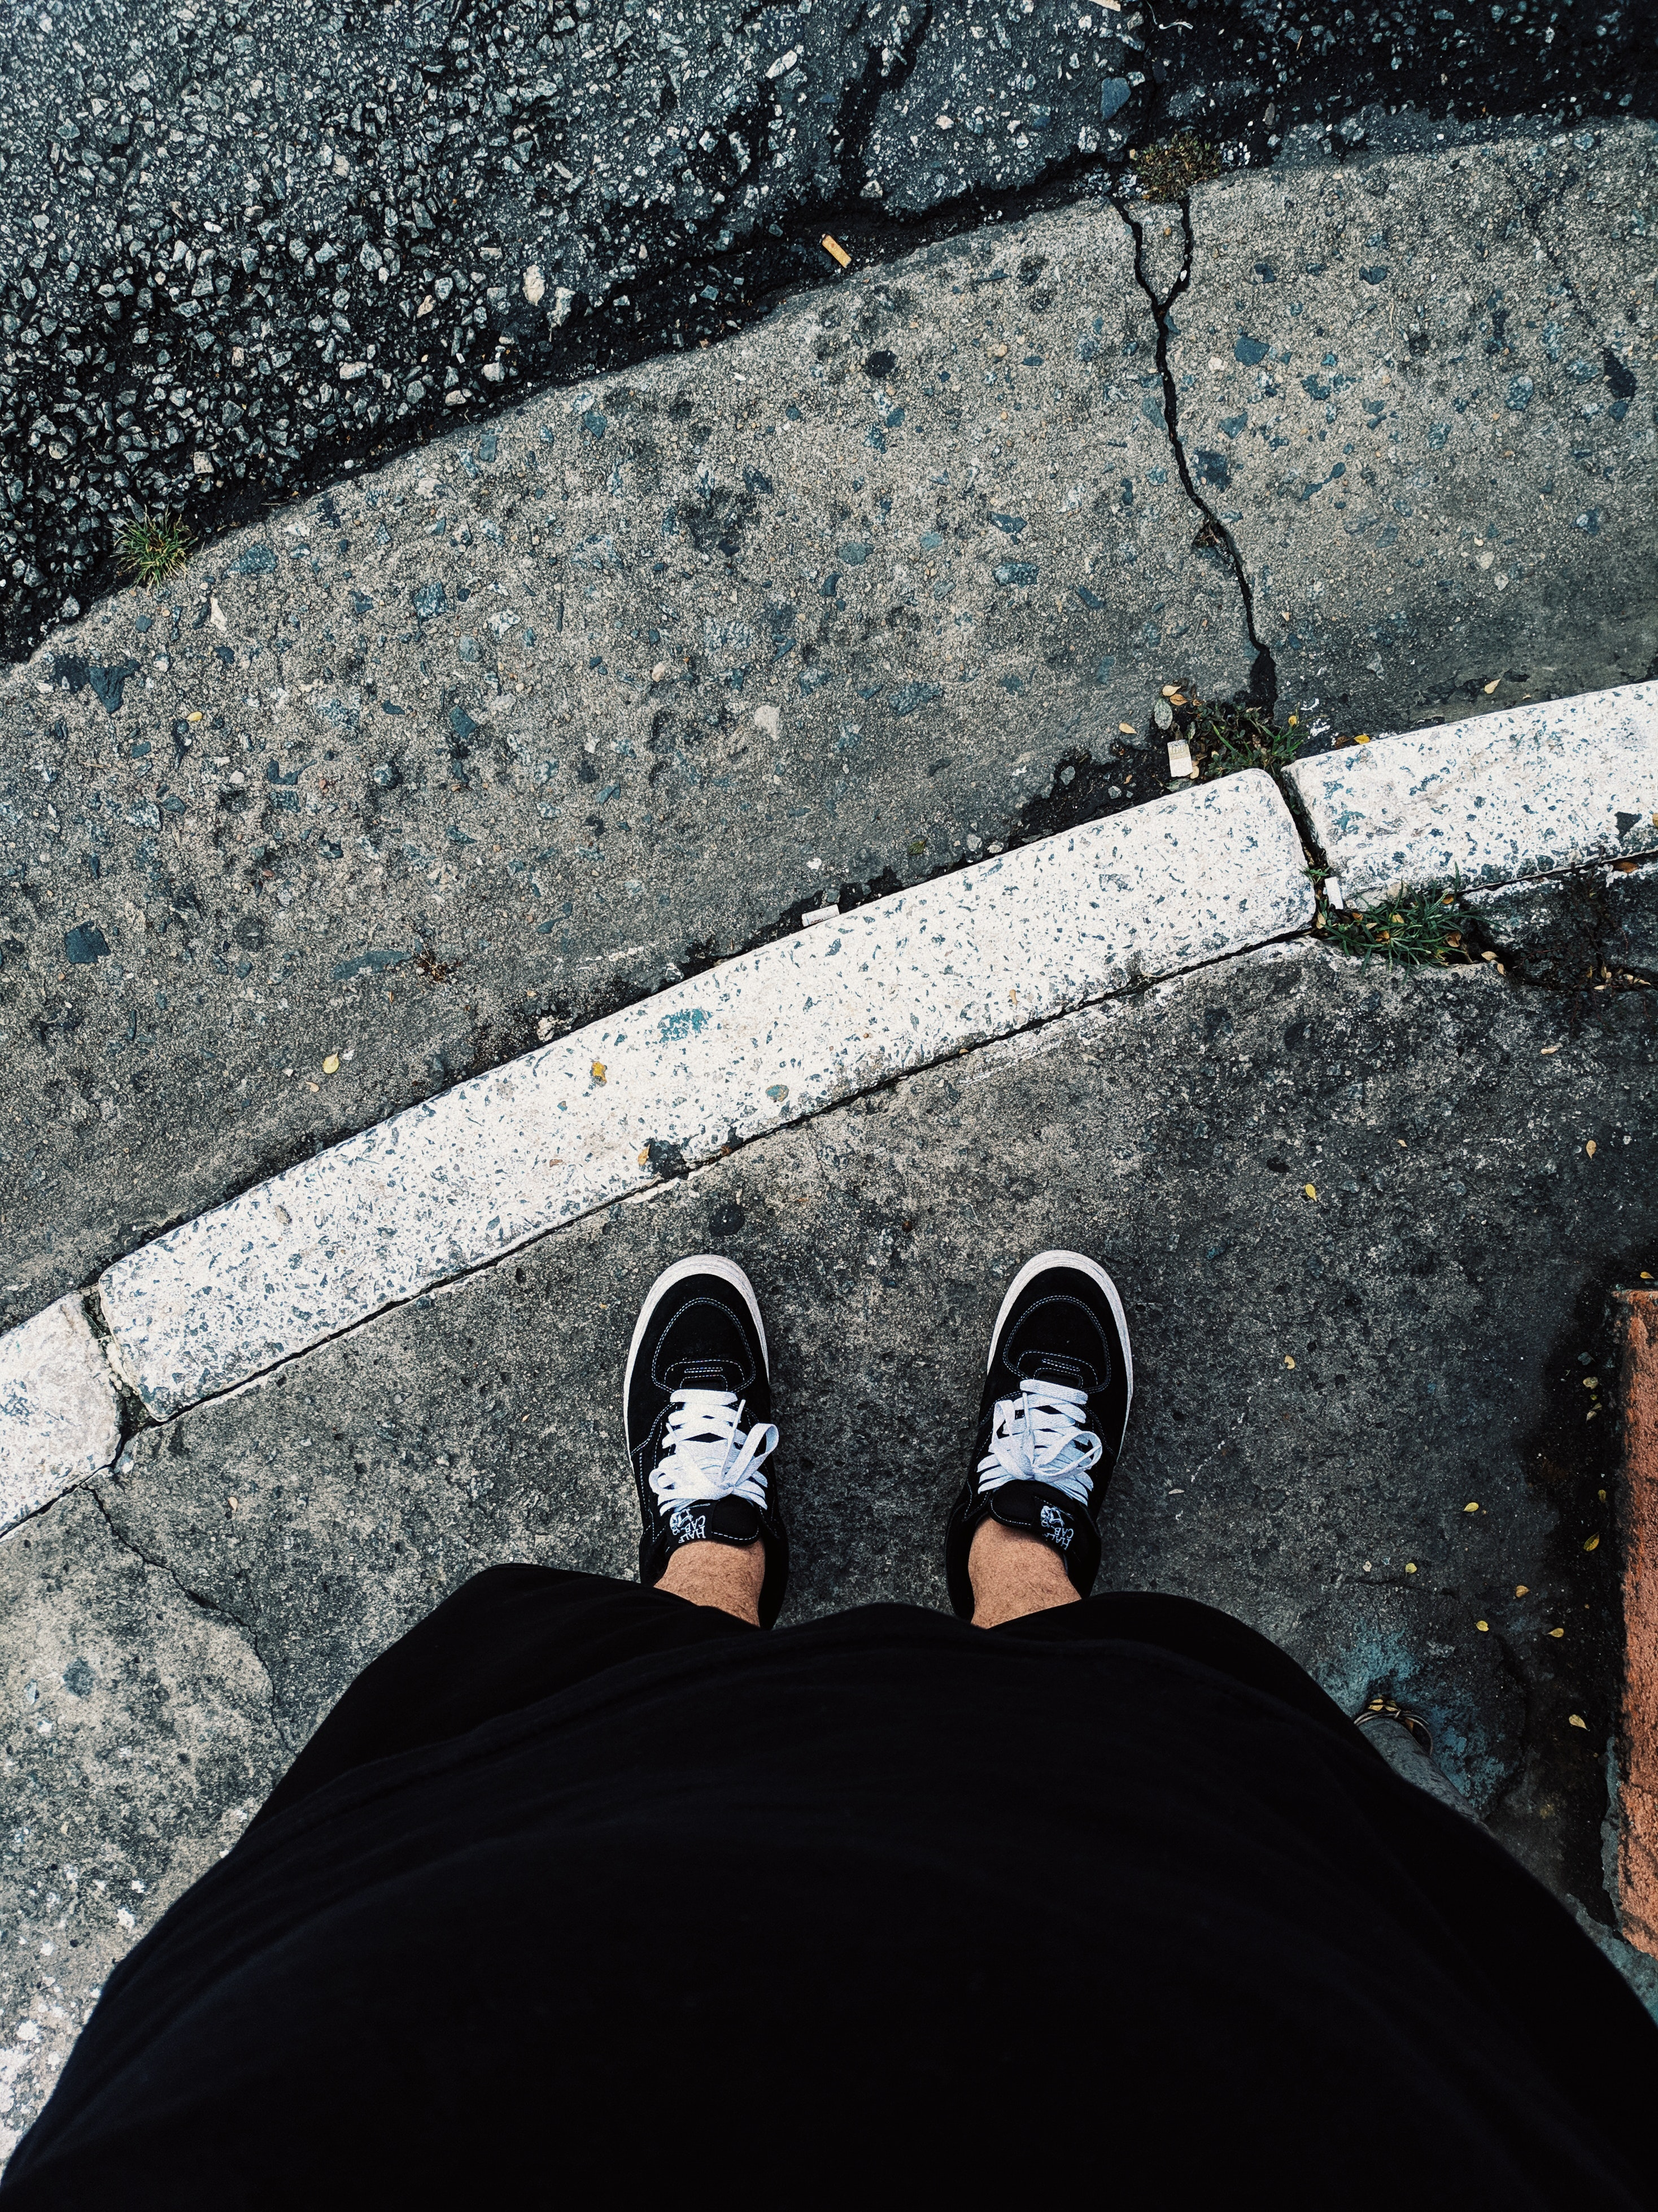 Person Wearing Black Low Top Sneakers · Free Stock Photo